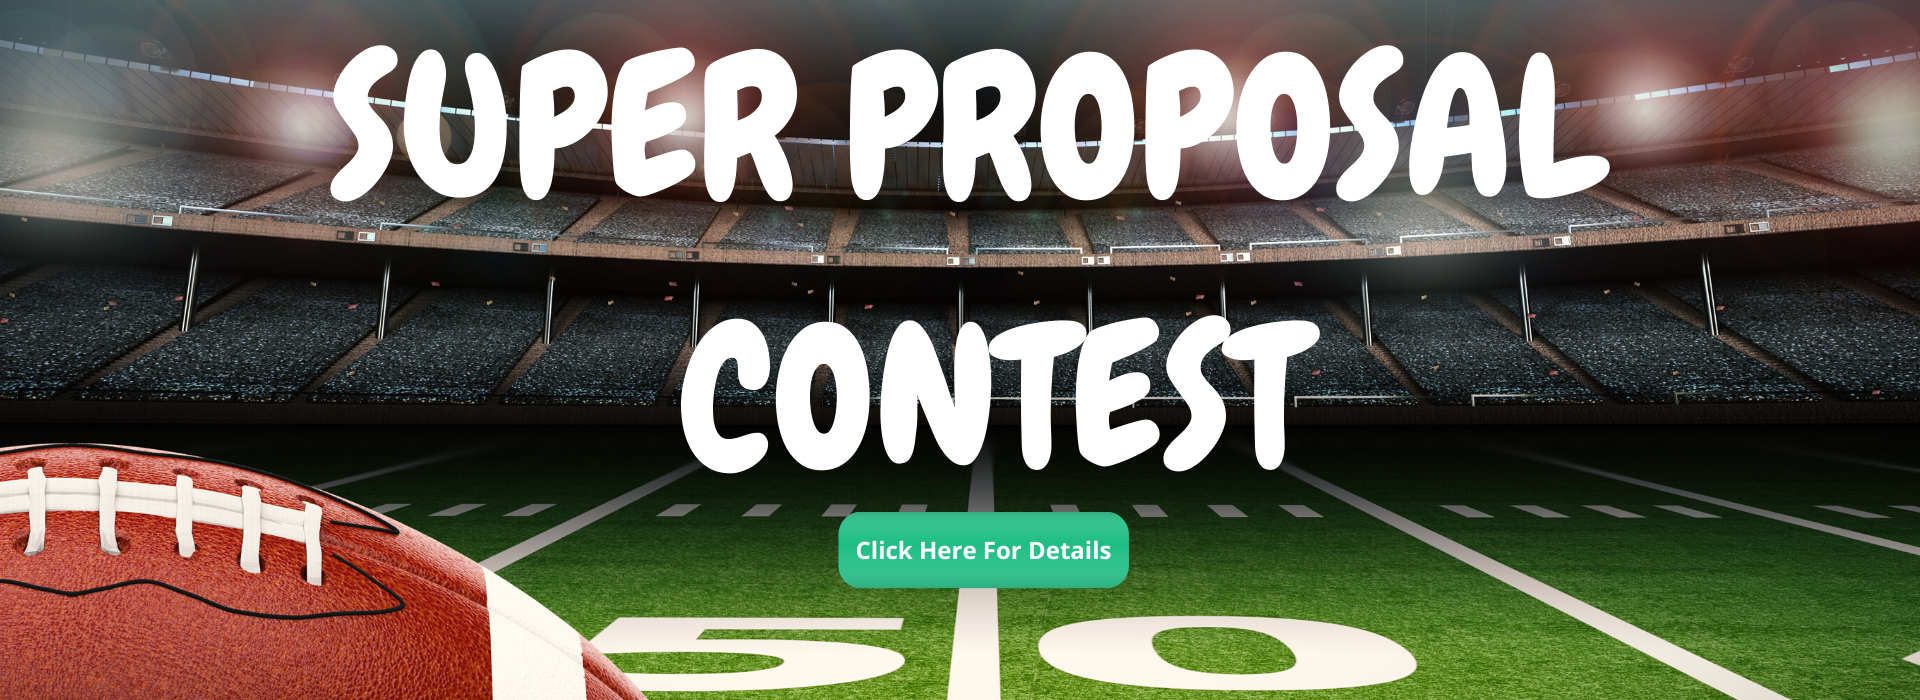 Super Proposal Contest